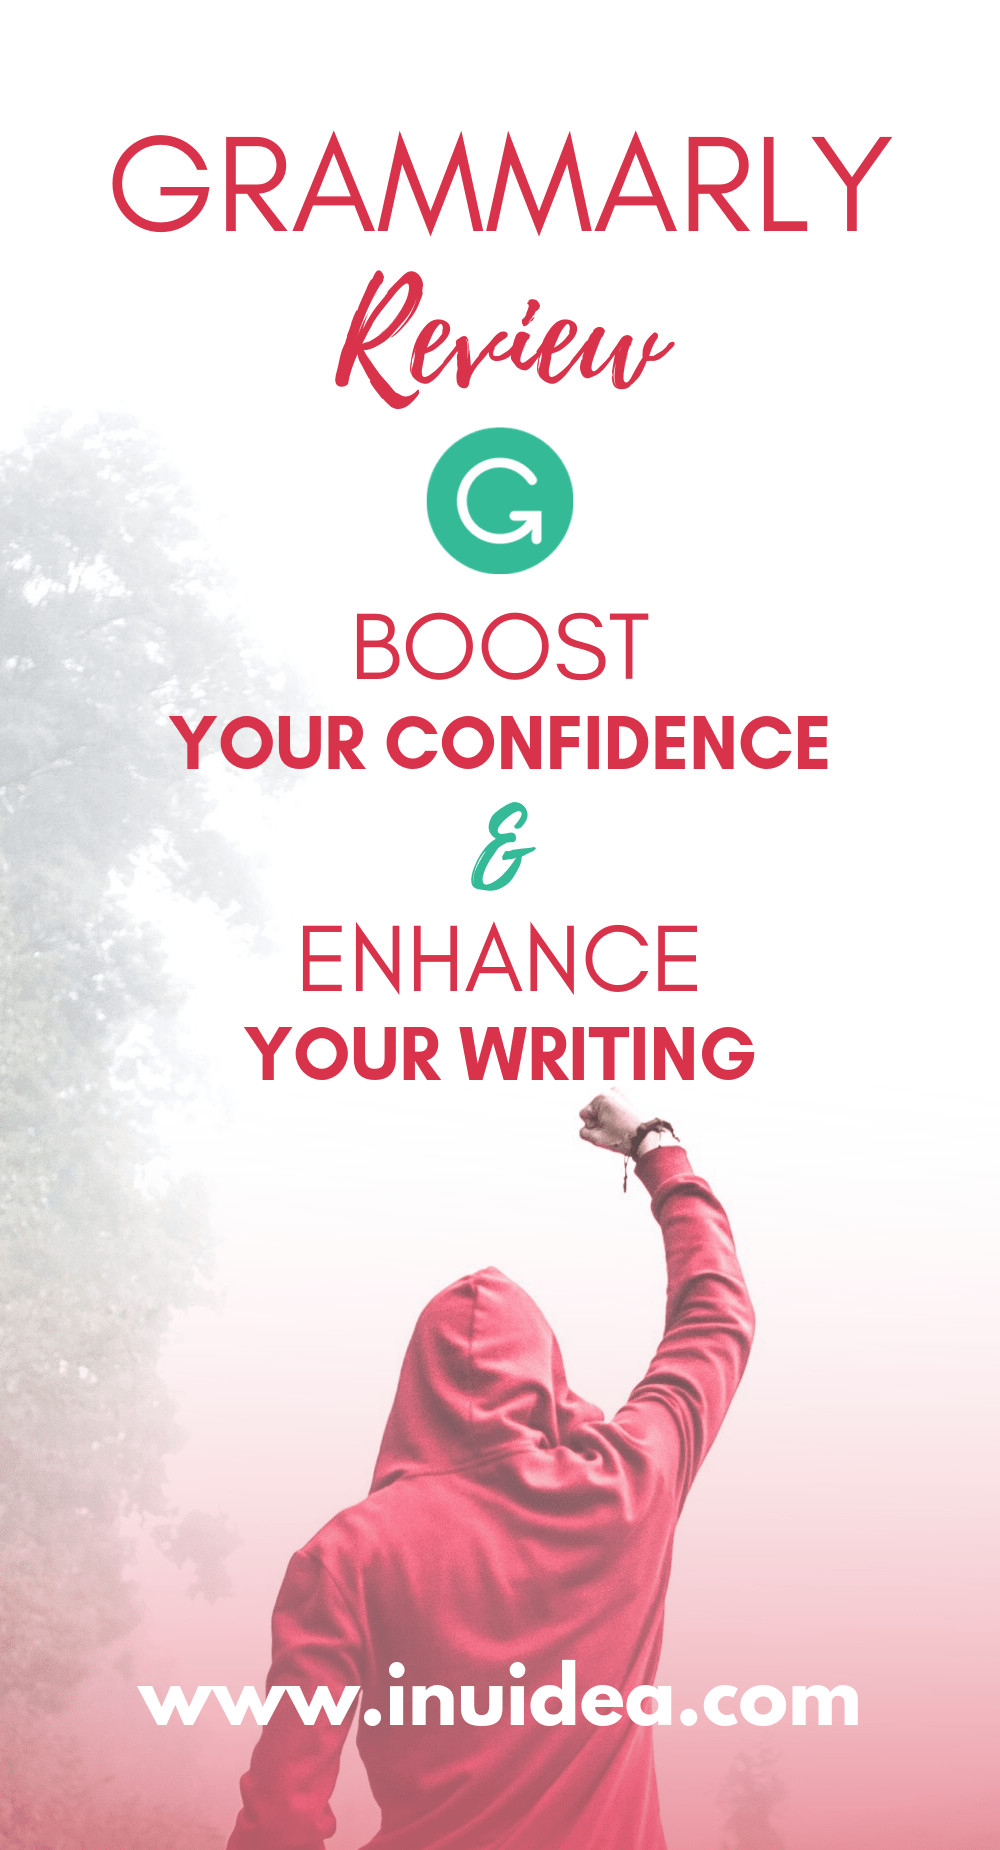 Grammarly Giveaway Real